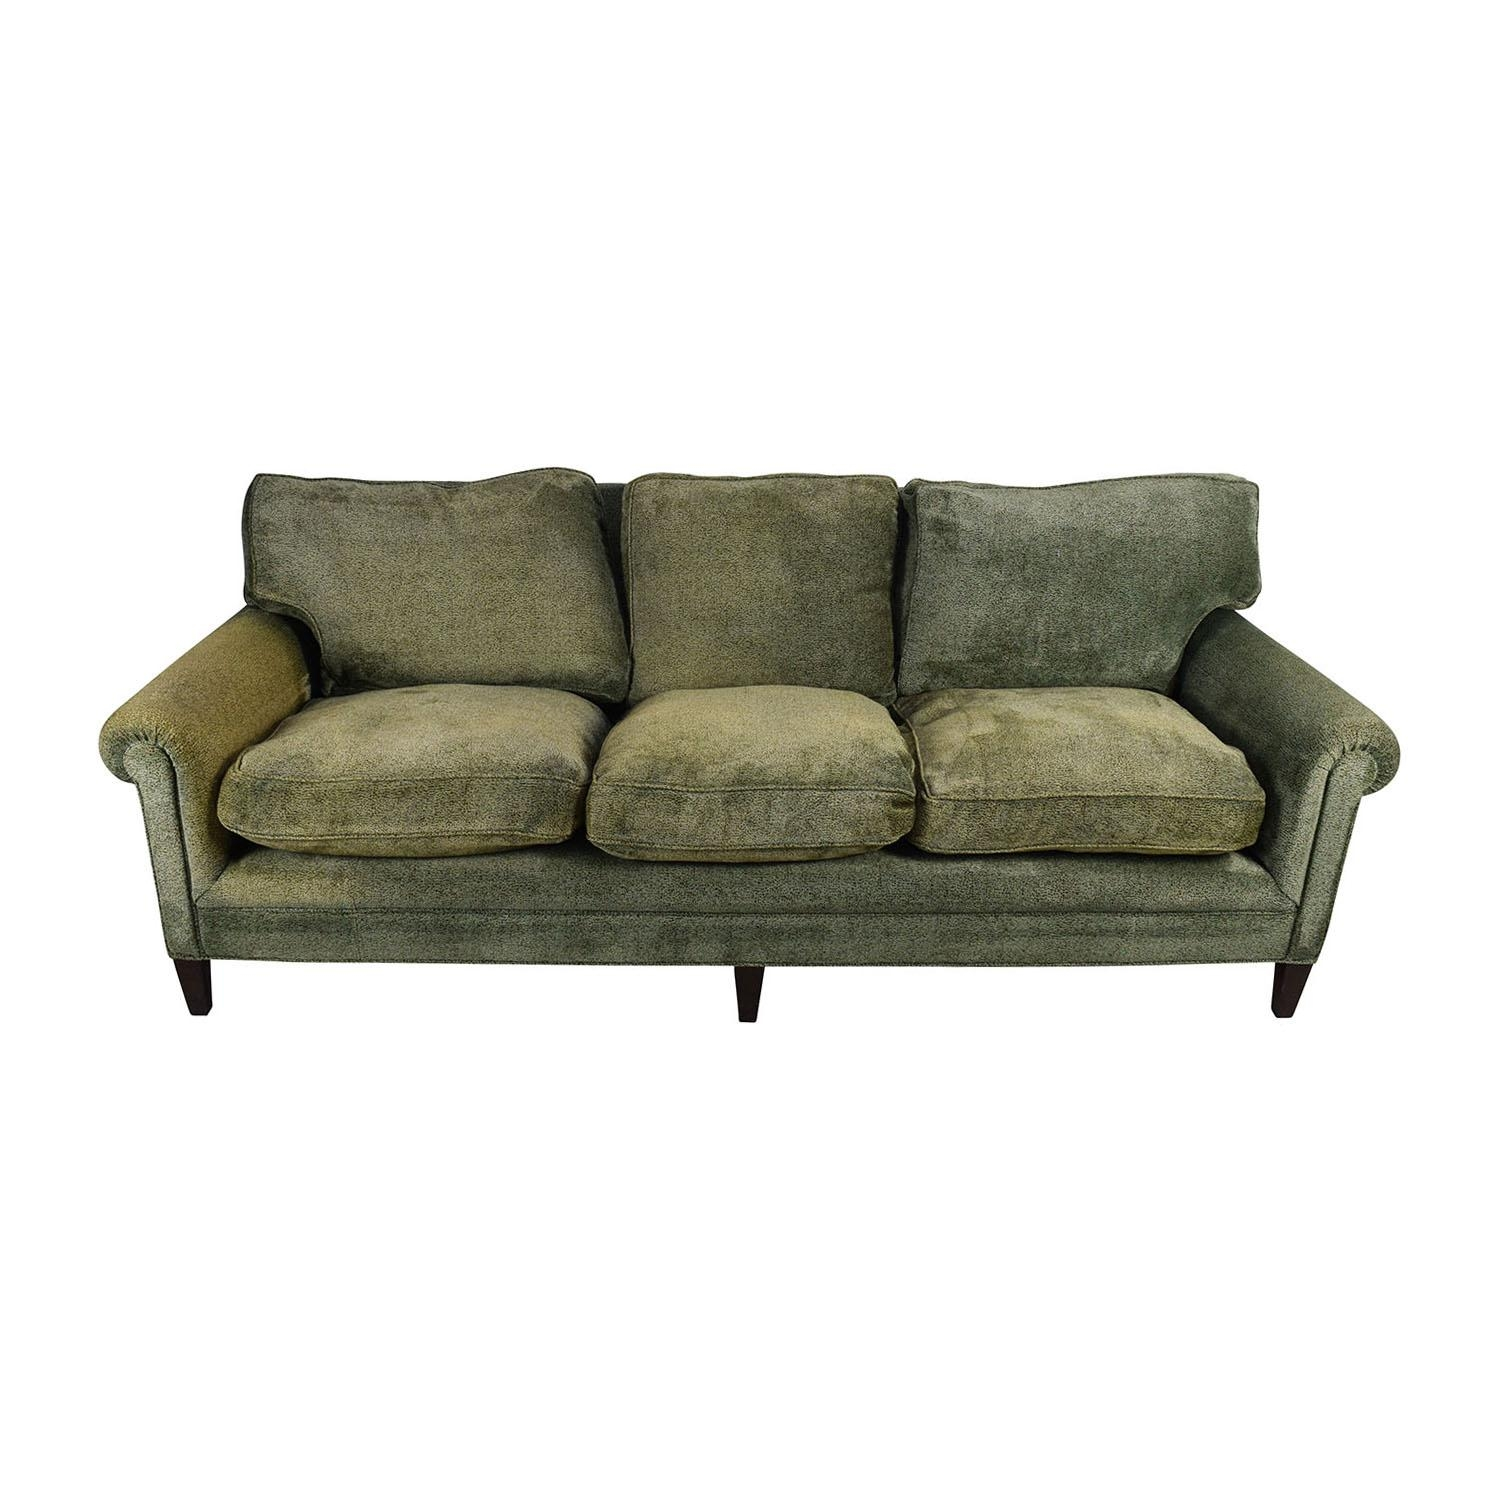 89% Off – George Smith George Smith Classic English Style Sofa / Sofas Intended For Classic Sofas For Sale (Photo 6 of 20)